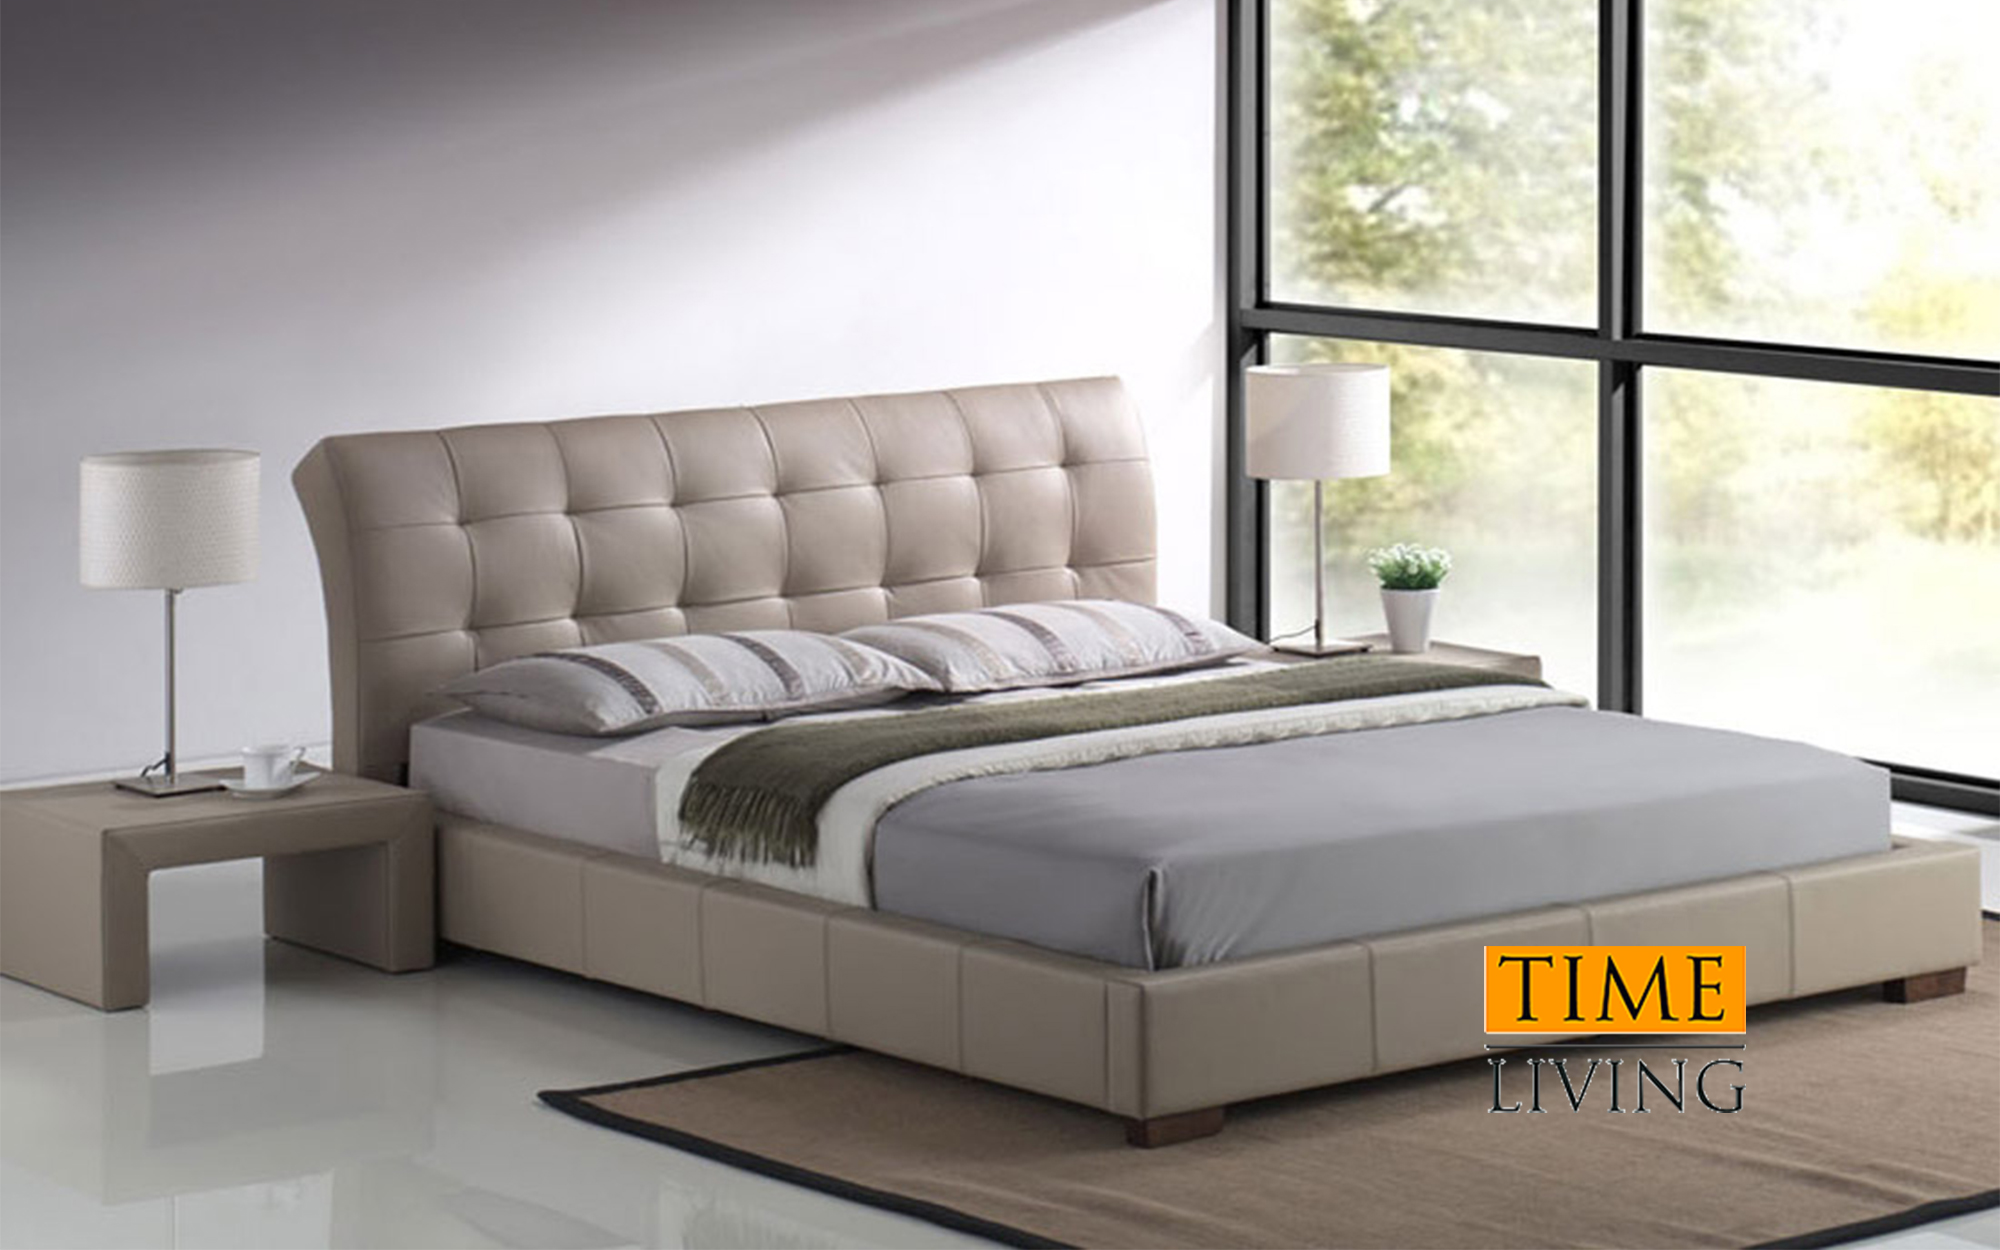 leather beds product image THACPHE